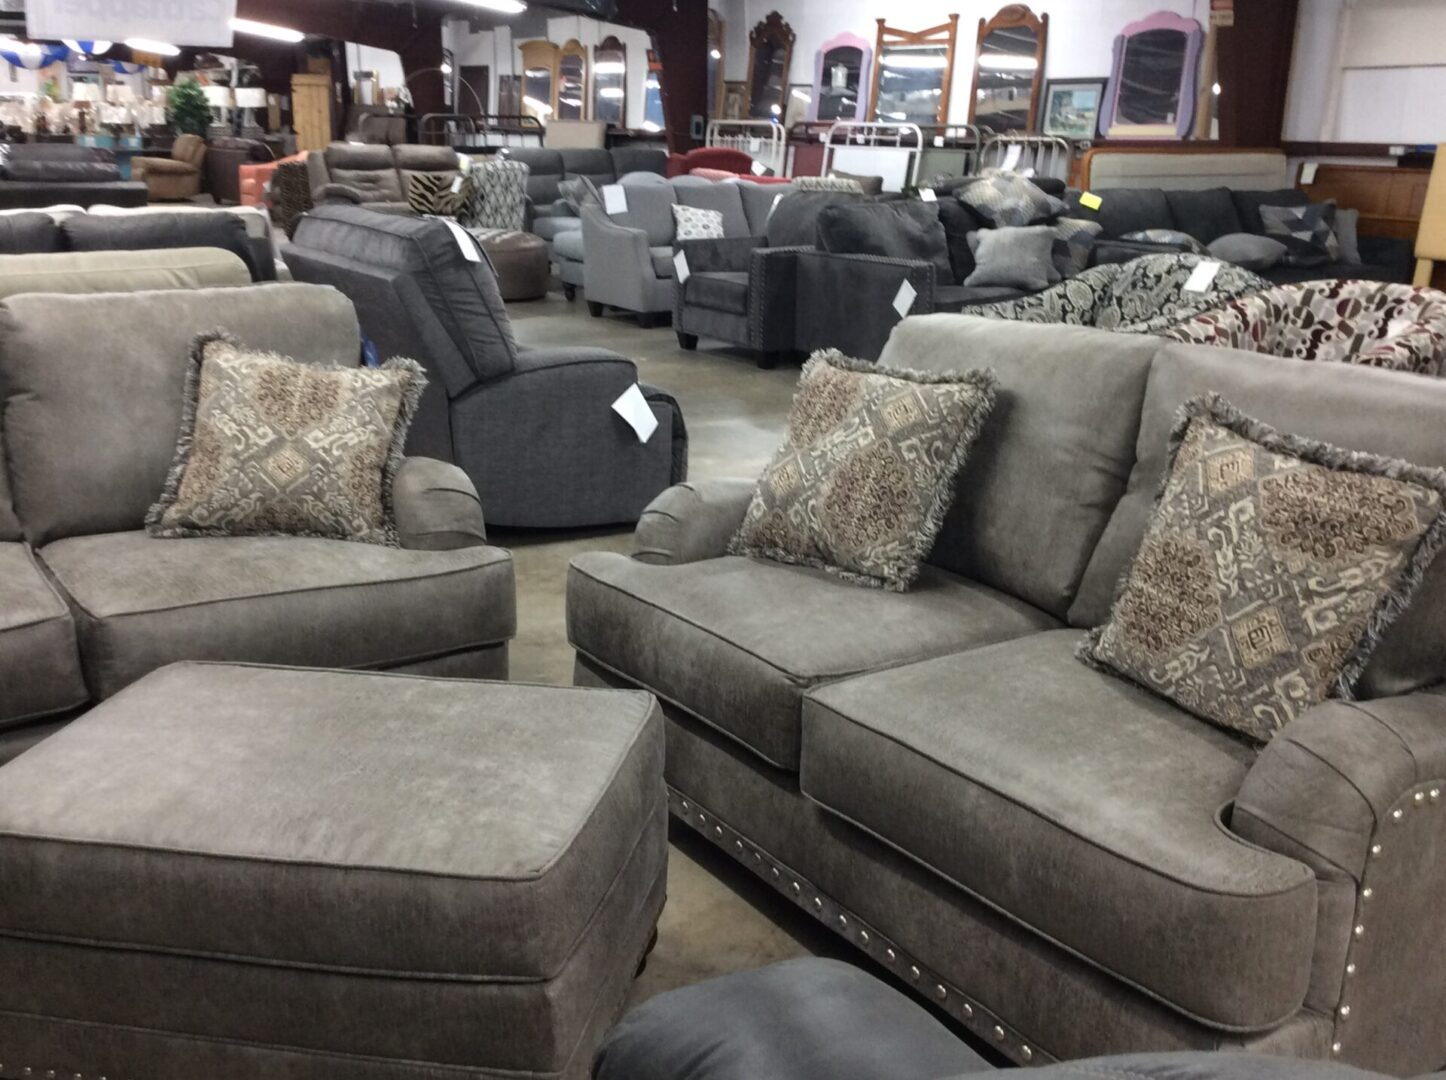 gray couches with throw pillows and other furniture